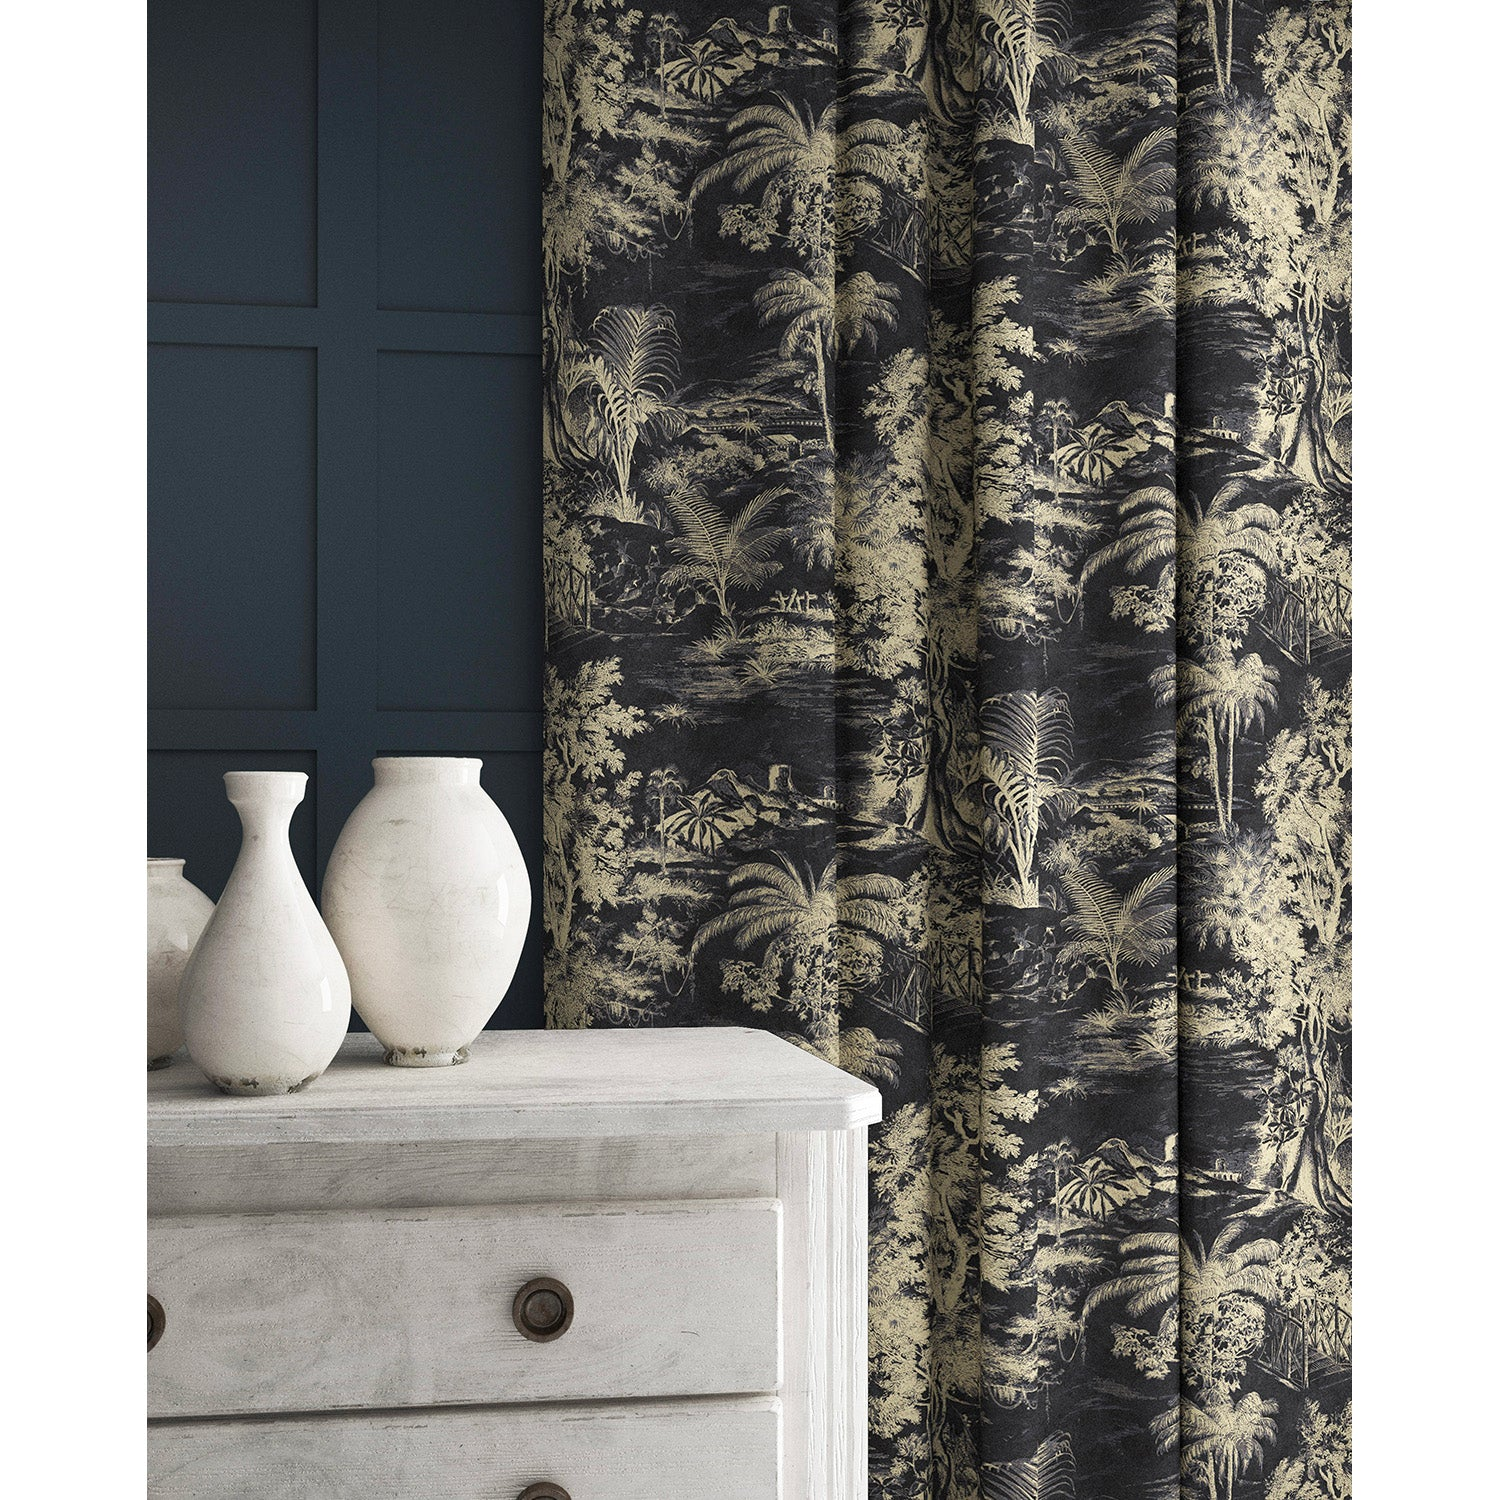 Curtain in a grey and white velvet fabric with stain resistant finish and palm tree design